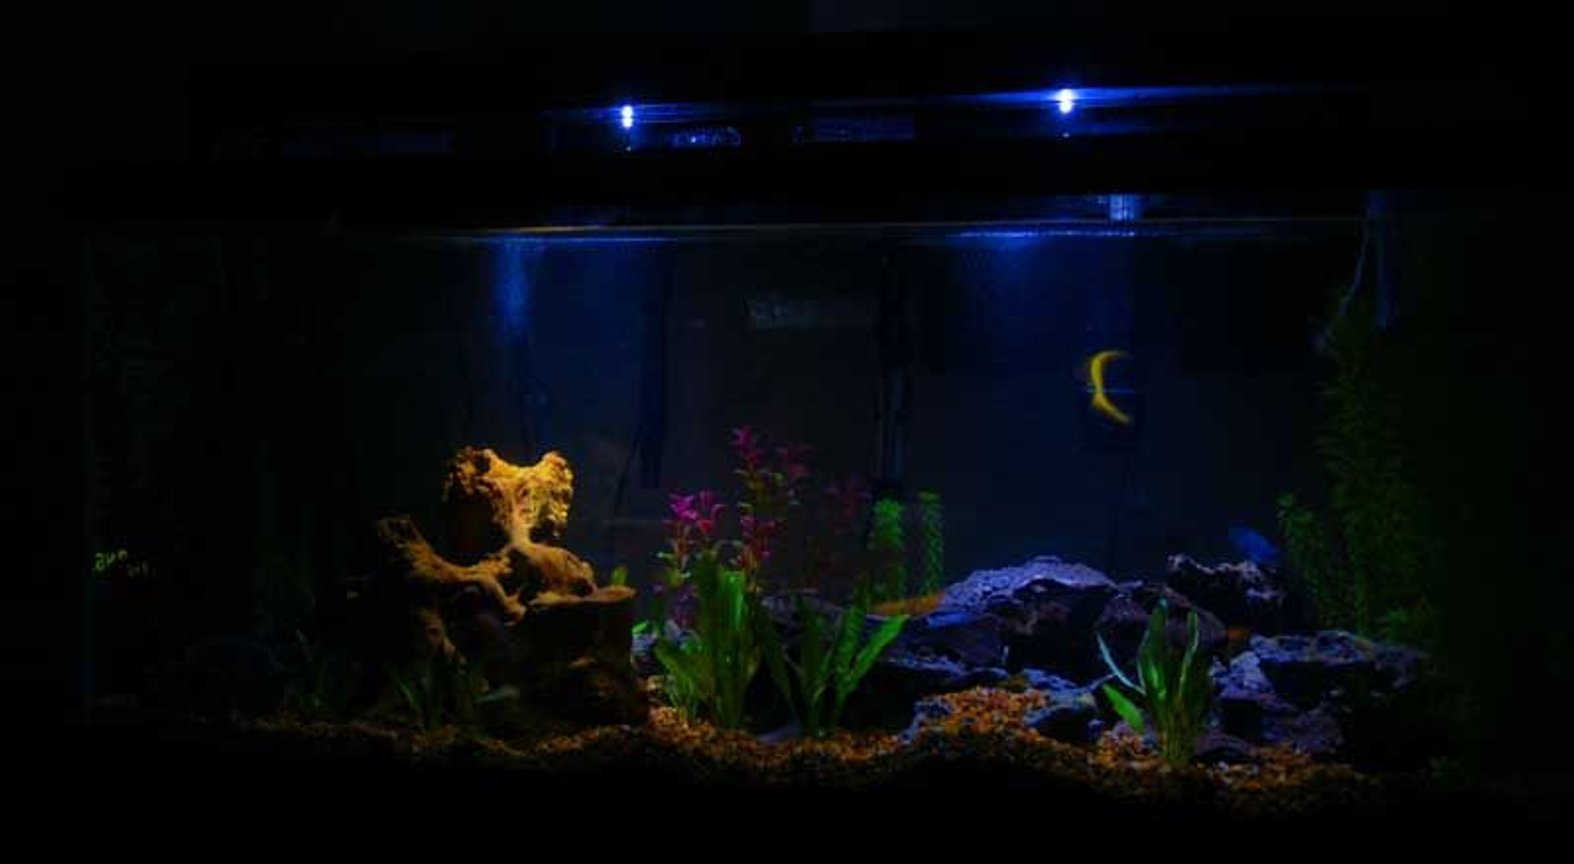 75 gallons freshwater fish tank (mostly fish and non-living decorations) - moonlight setting